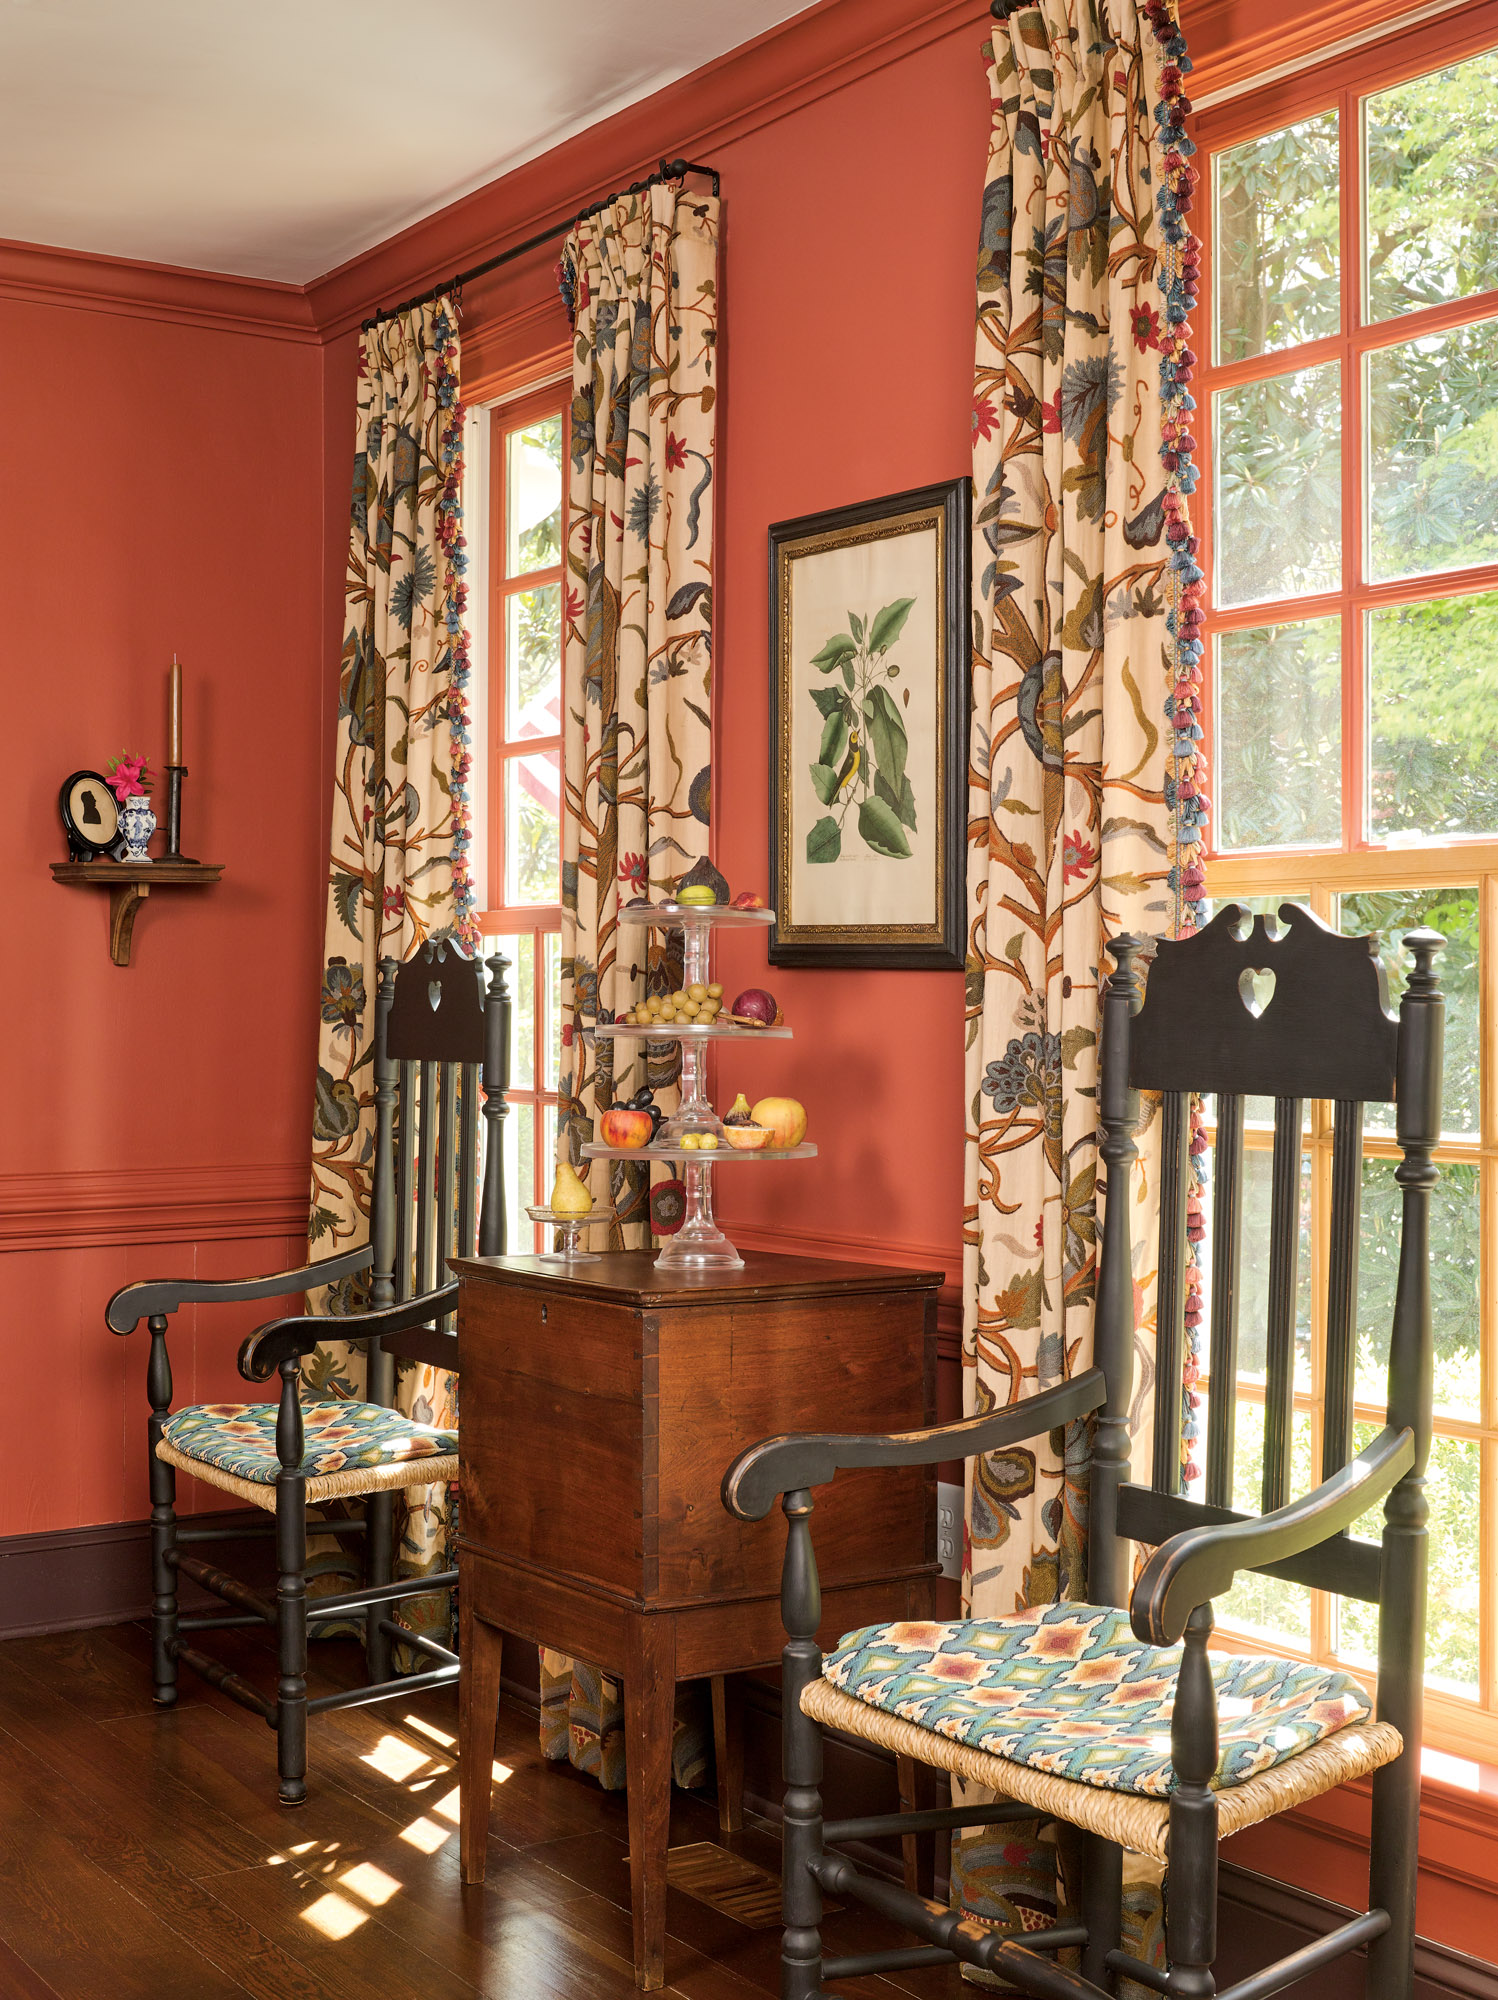 The salmon-red dining room has antique crewel fabric at the windows. Antique stone fruit on a glass étagère is displayed on the antique cellarette (bottle case) between reproduction banister-back chairs.